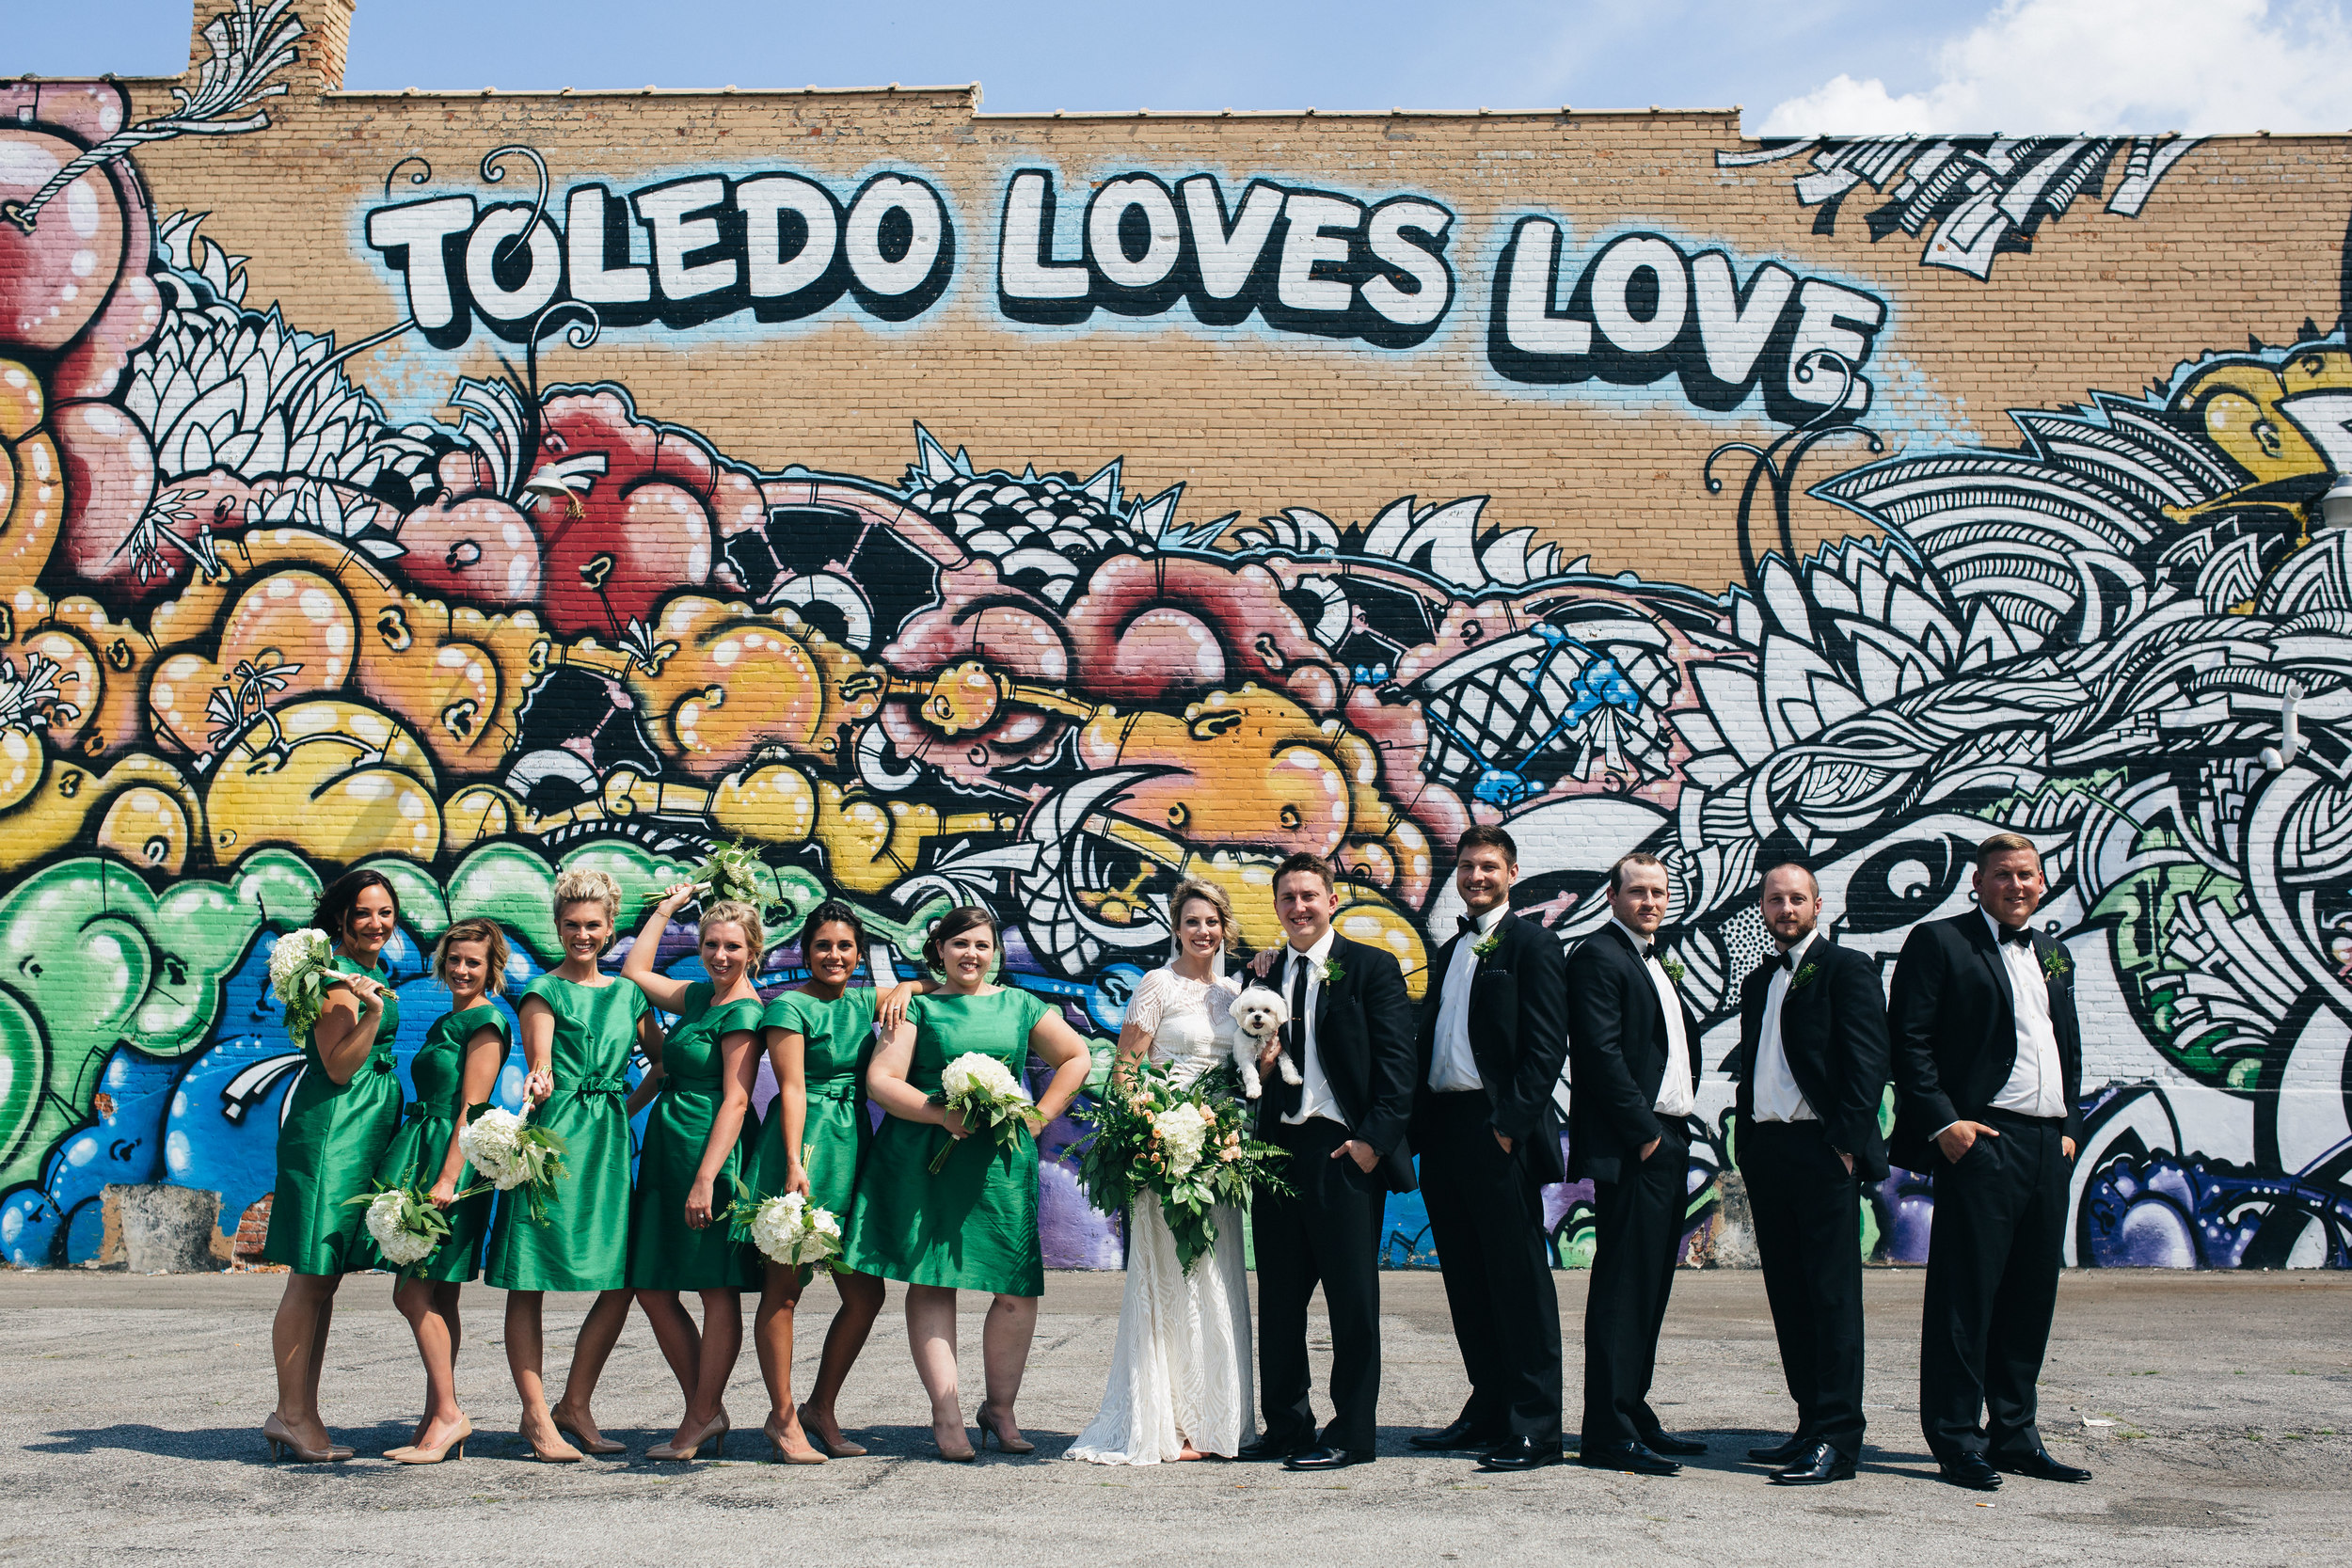 Bridal party photography at Toledo Loves Love wall in Downtown Toledo.